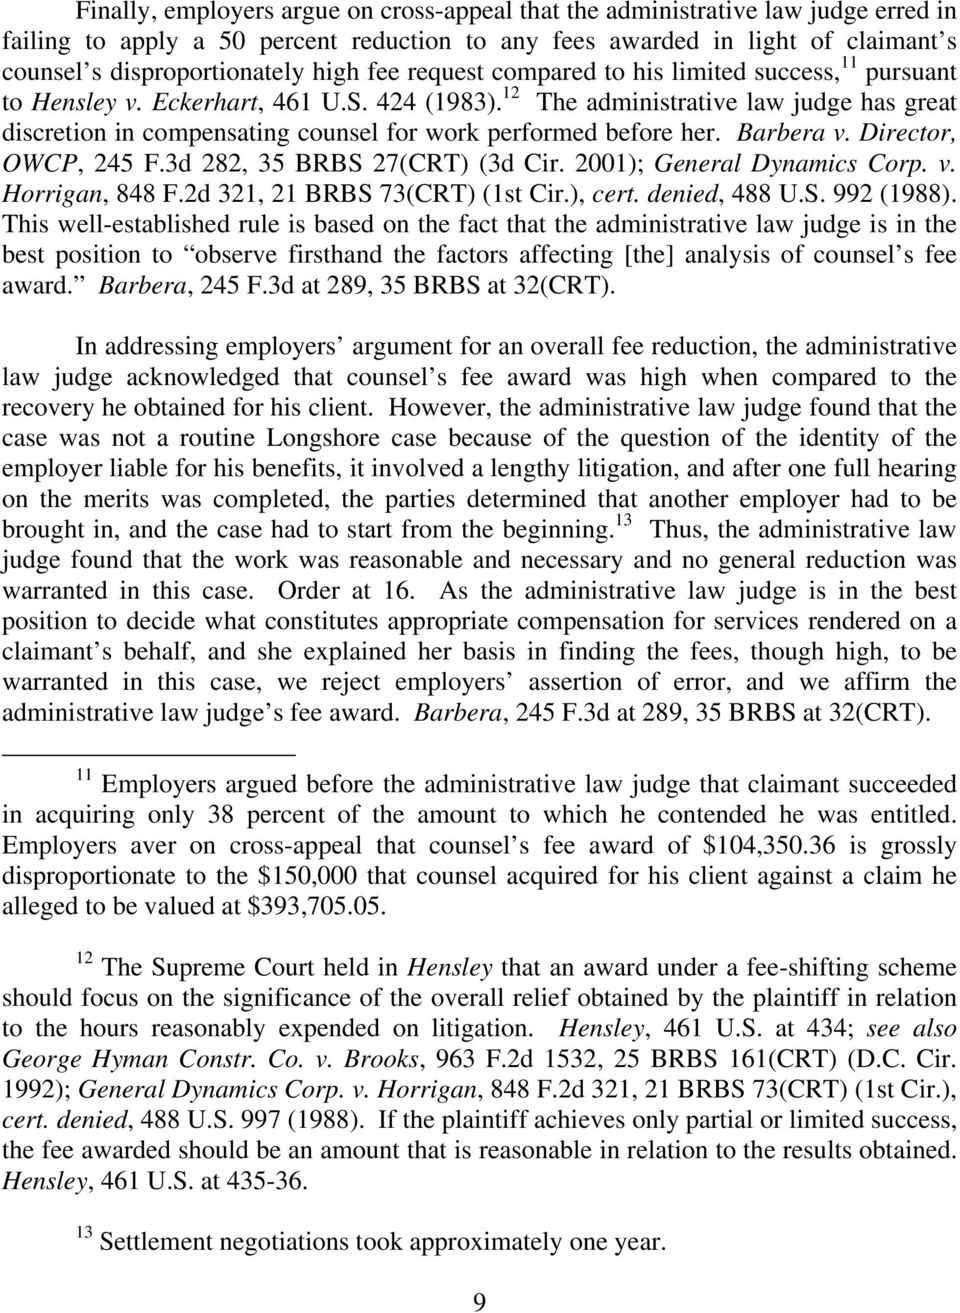 12 The administrative law judge has great discretion in compensating counsel for work performed before her. Barbera v. Director, OWCP, 245 F.3d 282, 35 BRBS 27(CRT (3d Cir.